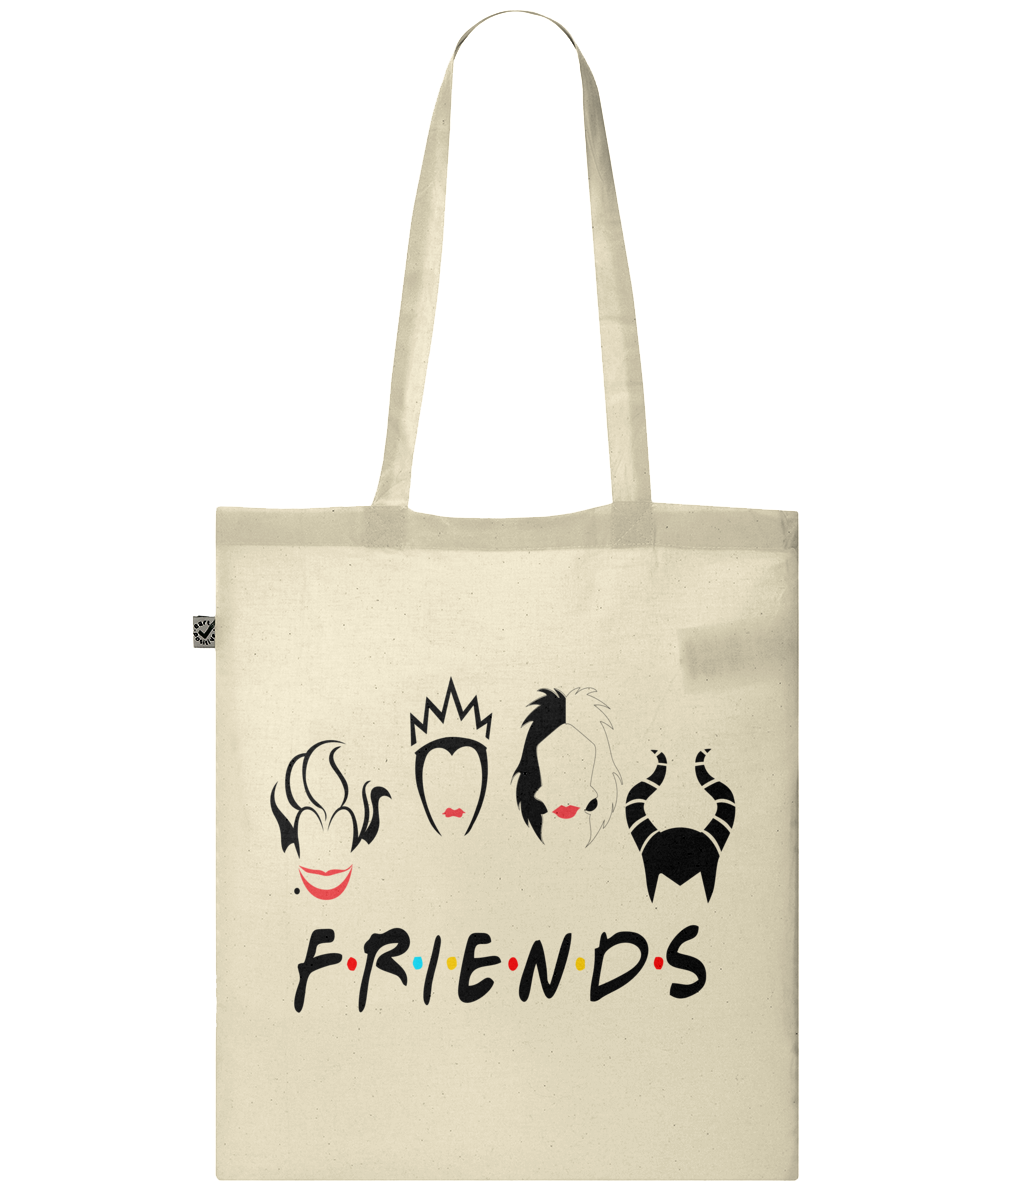 EP70 Classic Shopper Tote Bag Friends Villans Inspired